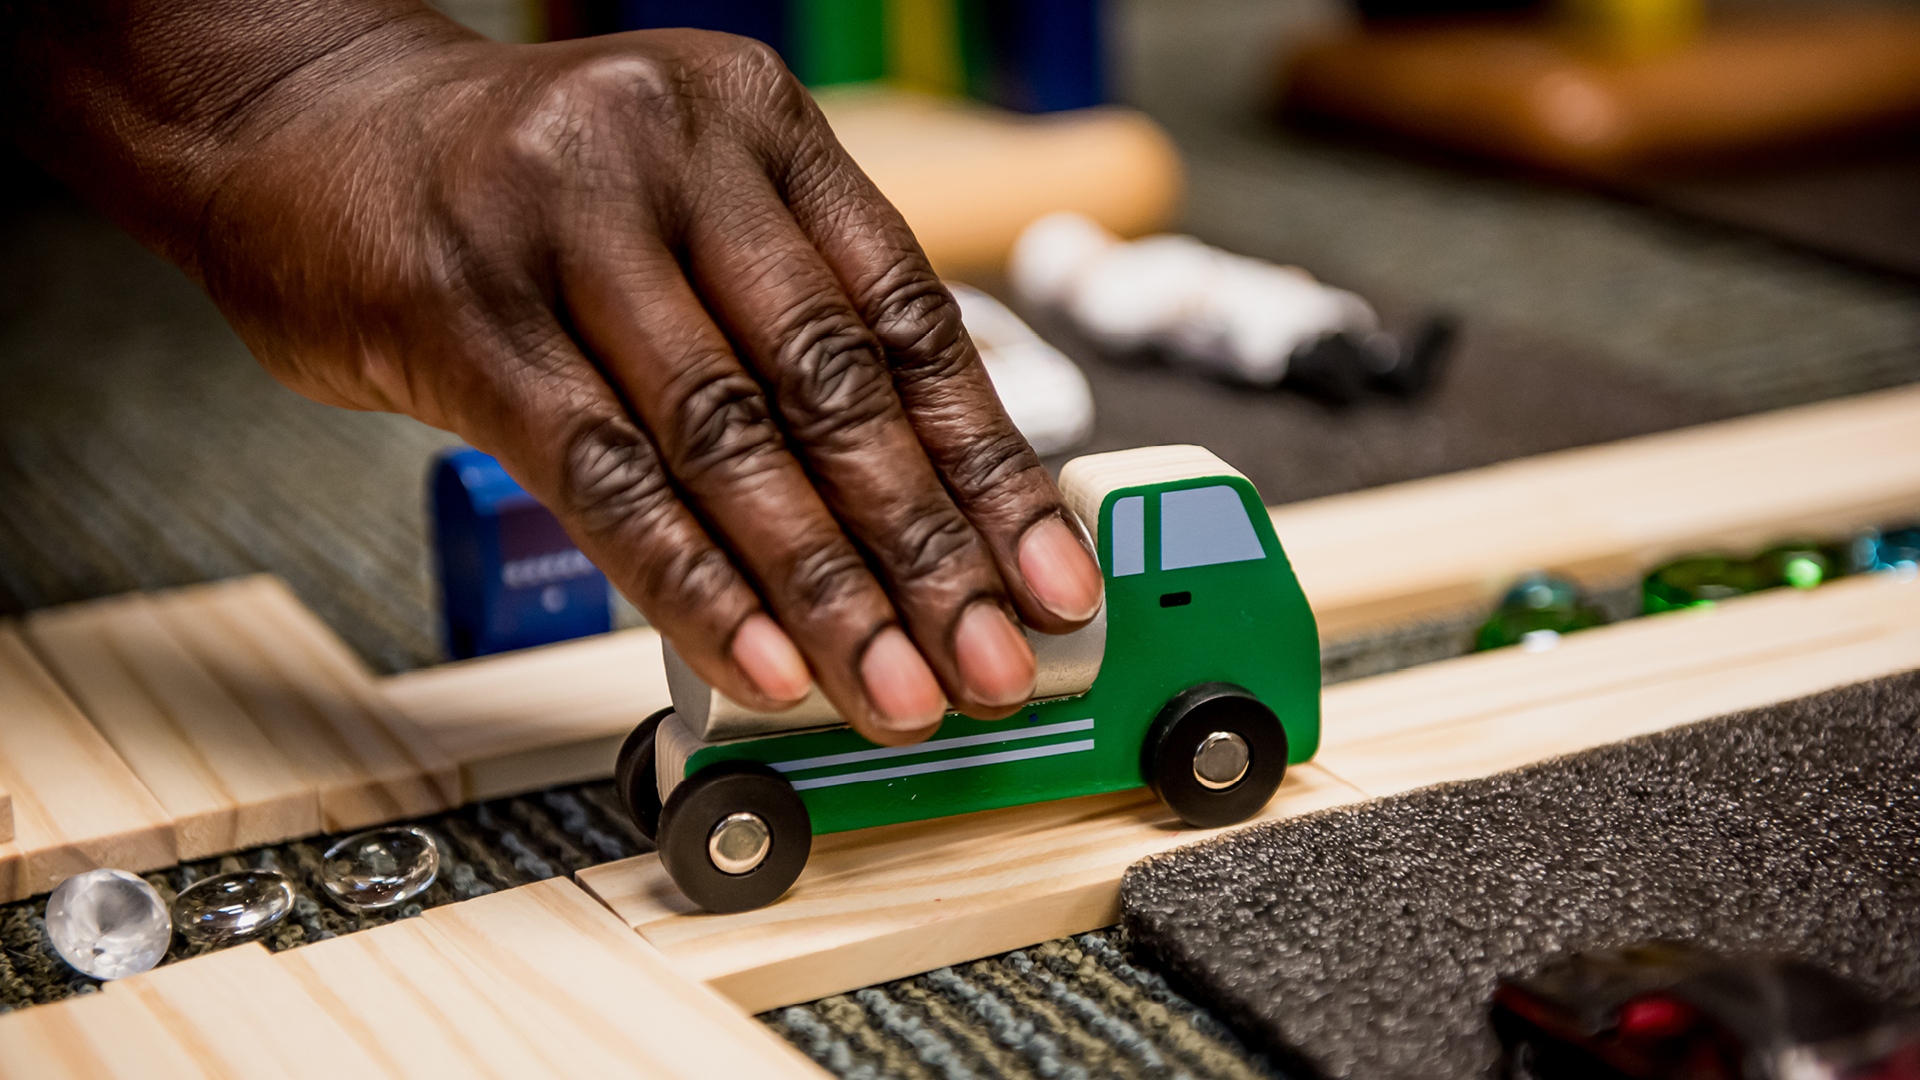 Green toy truck.